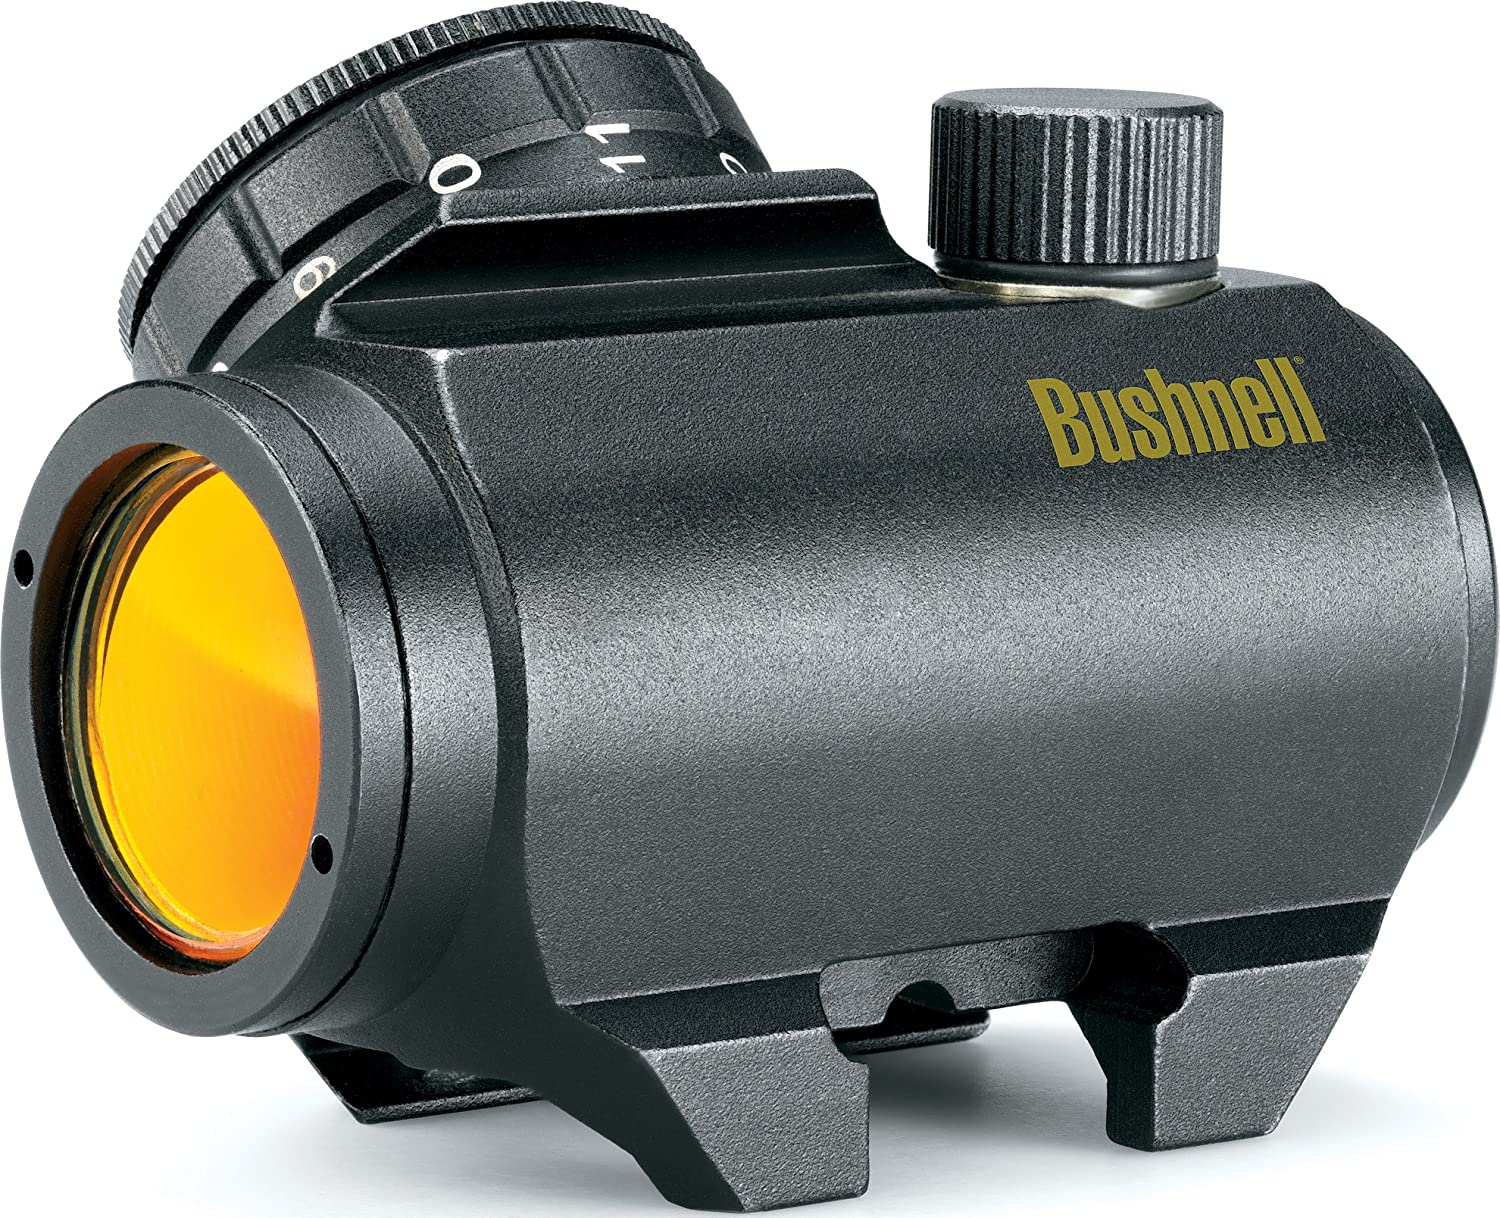 4.Bushnell TRS-25 Red Dot Sight